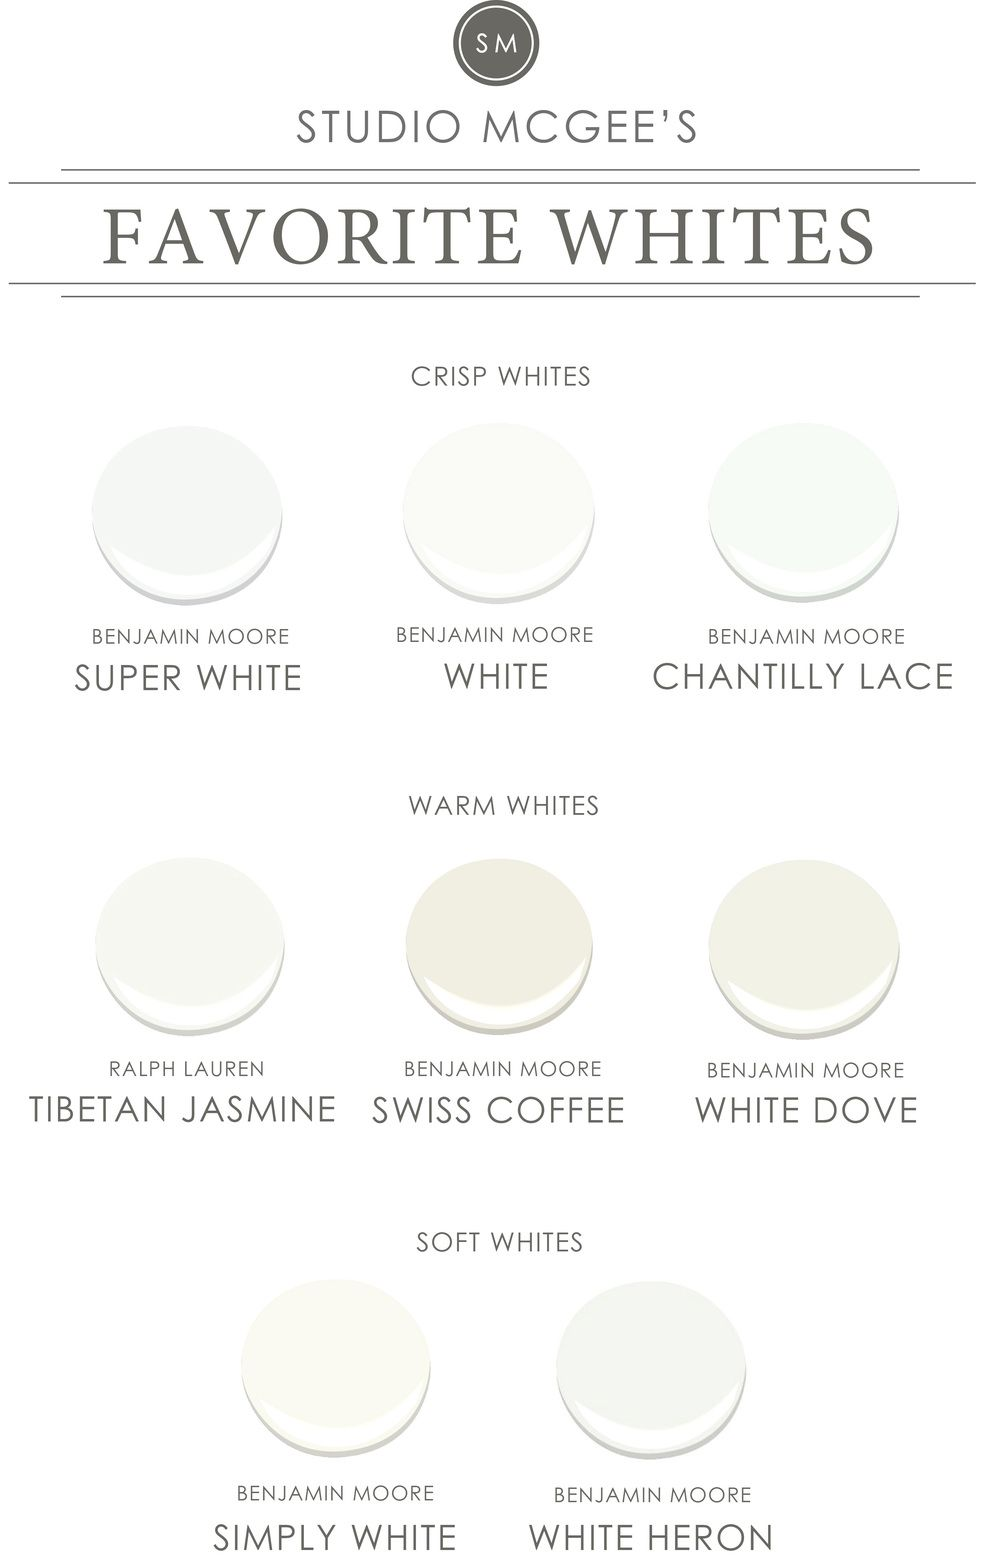 Benjamin moore color of the year  simply white studio mcgee also in colors rh pinterest